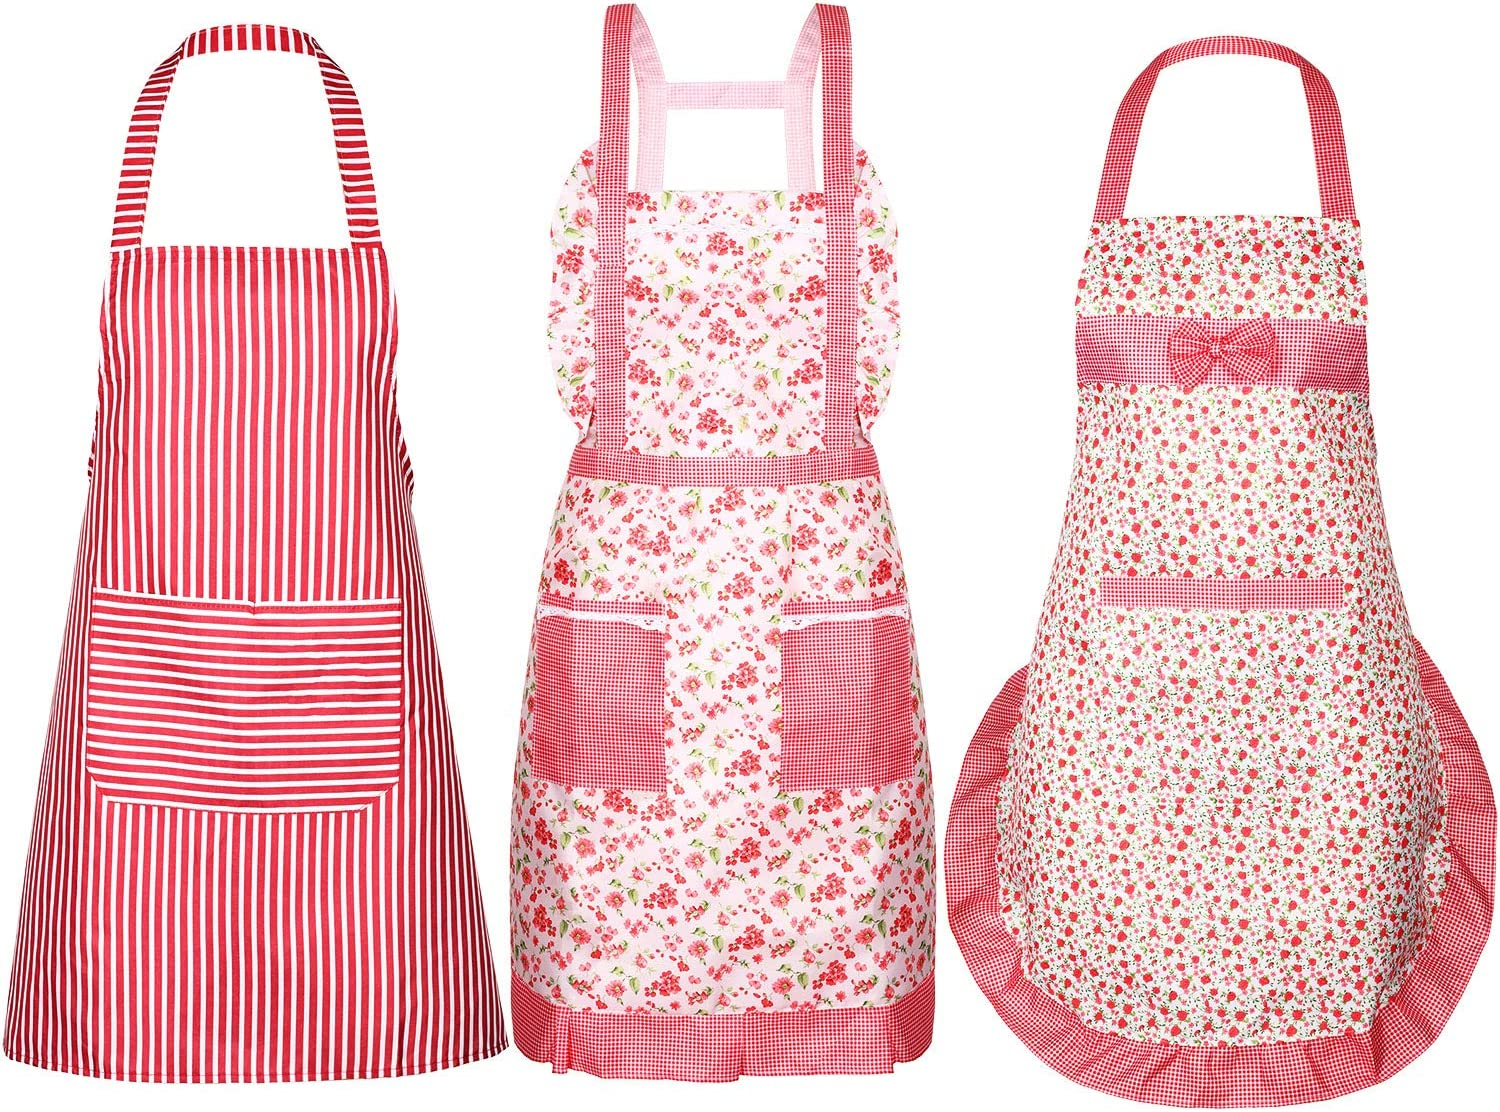 SATINIOR 3 Pieces Women Apron with Pockets Cute Vintage Cooking Apron Kitchen Housework Aprons for Christmas Thanksgiving Gift (Color Set 5, Size Set 5)